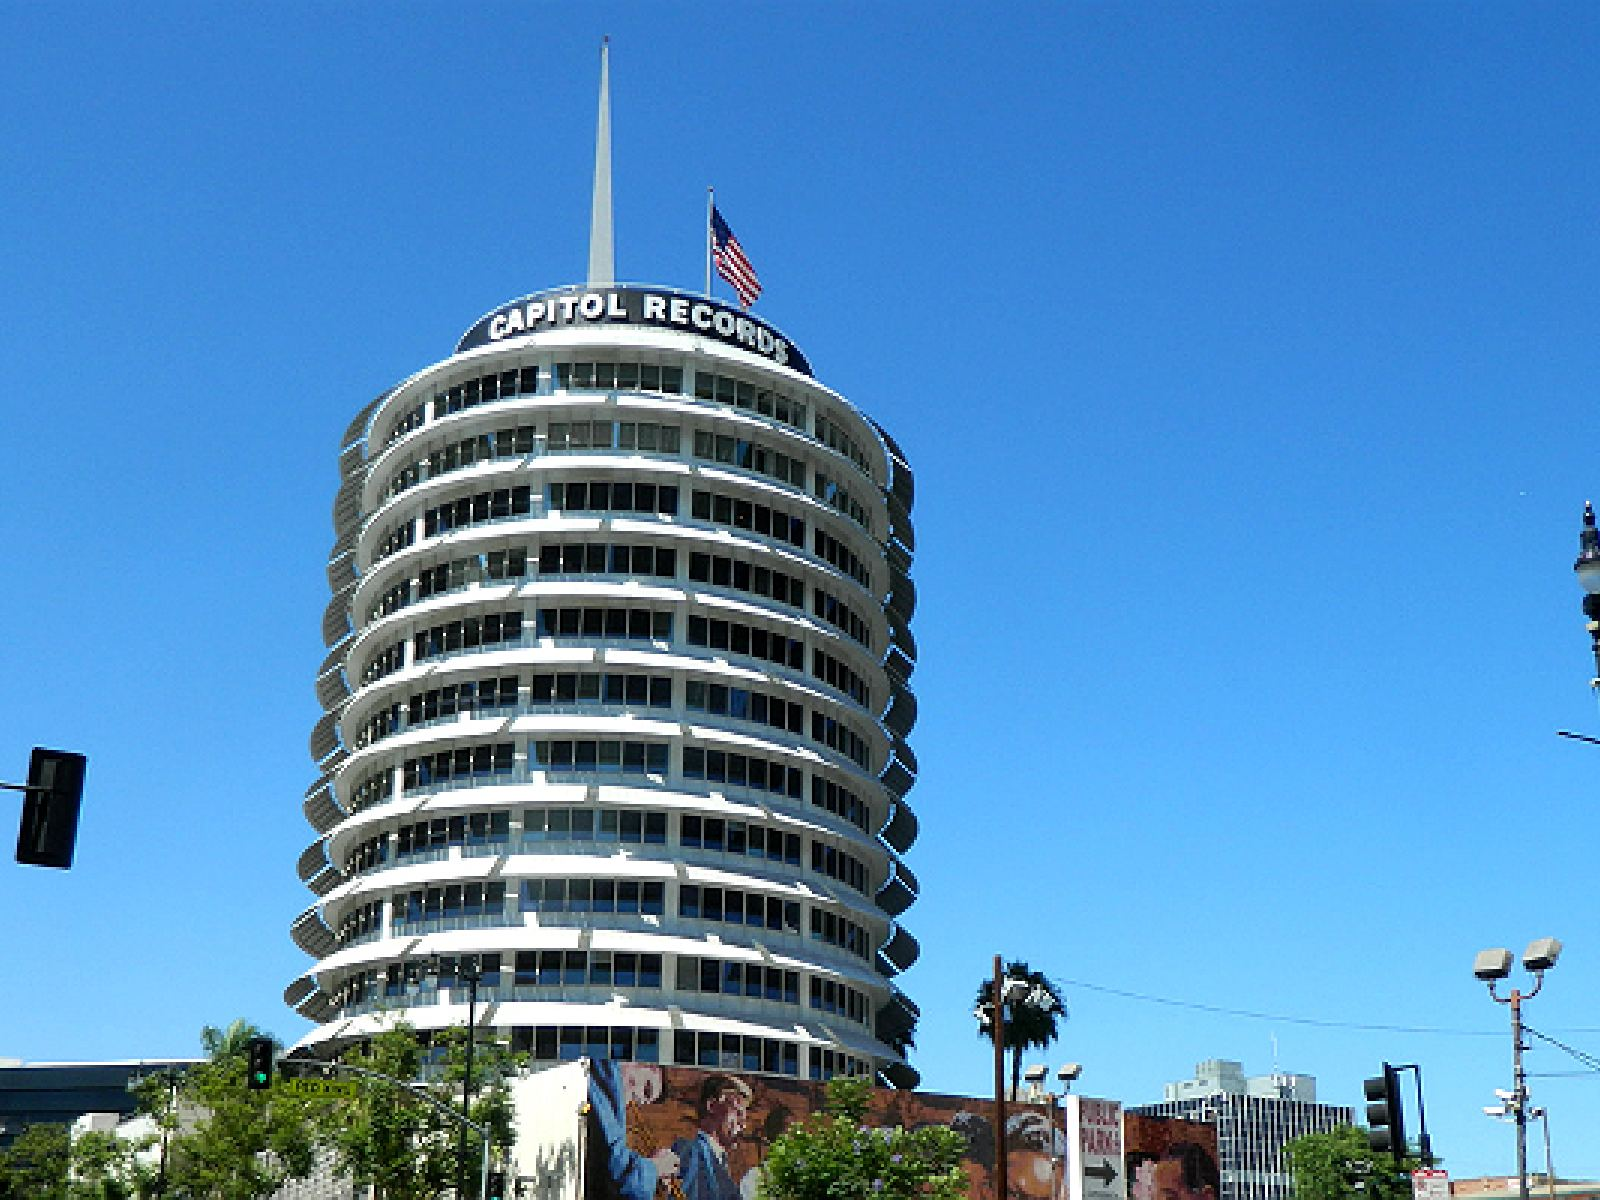 capitol-records-building.jpg?h=3ae6b753&